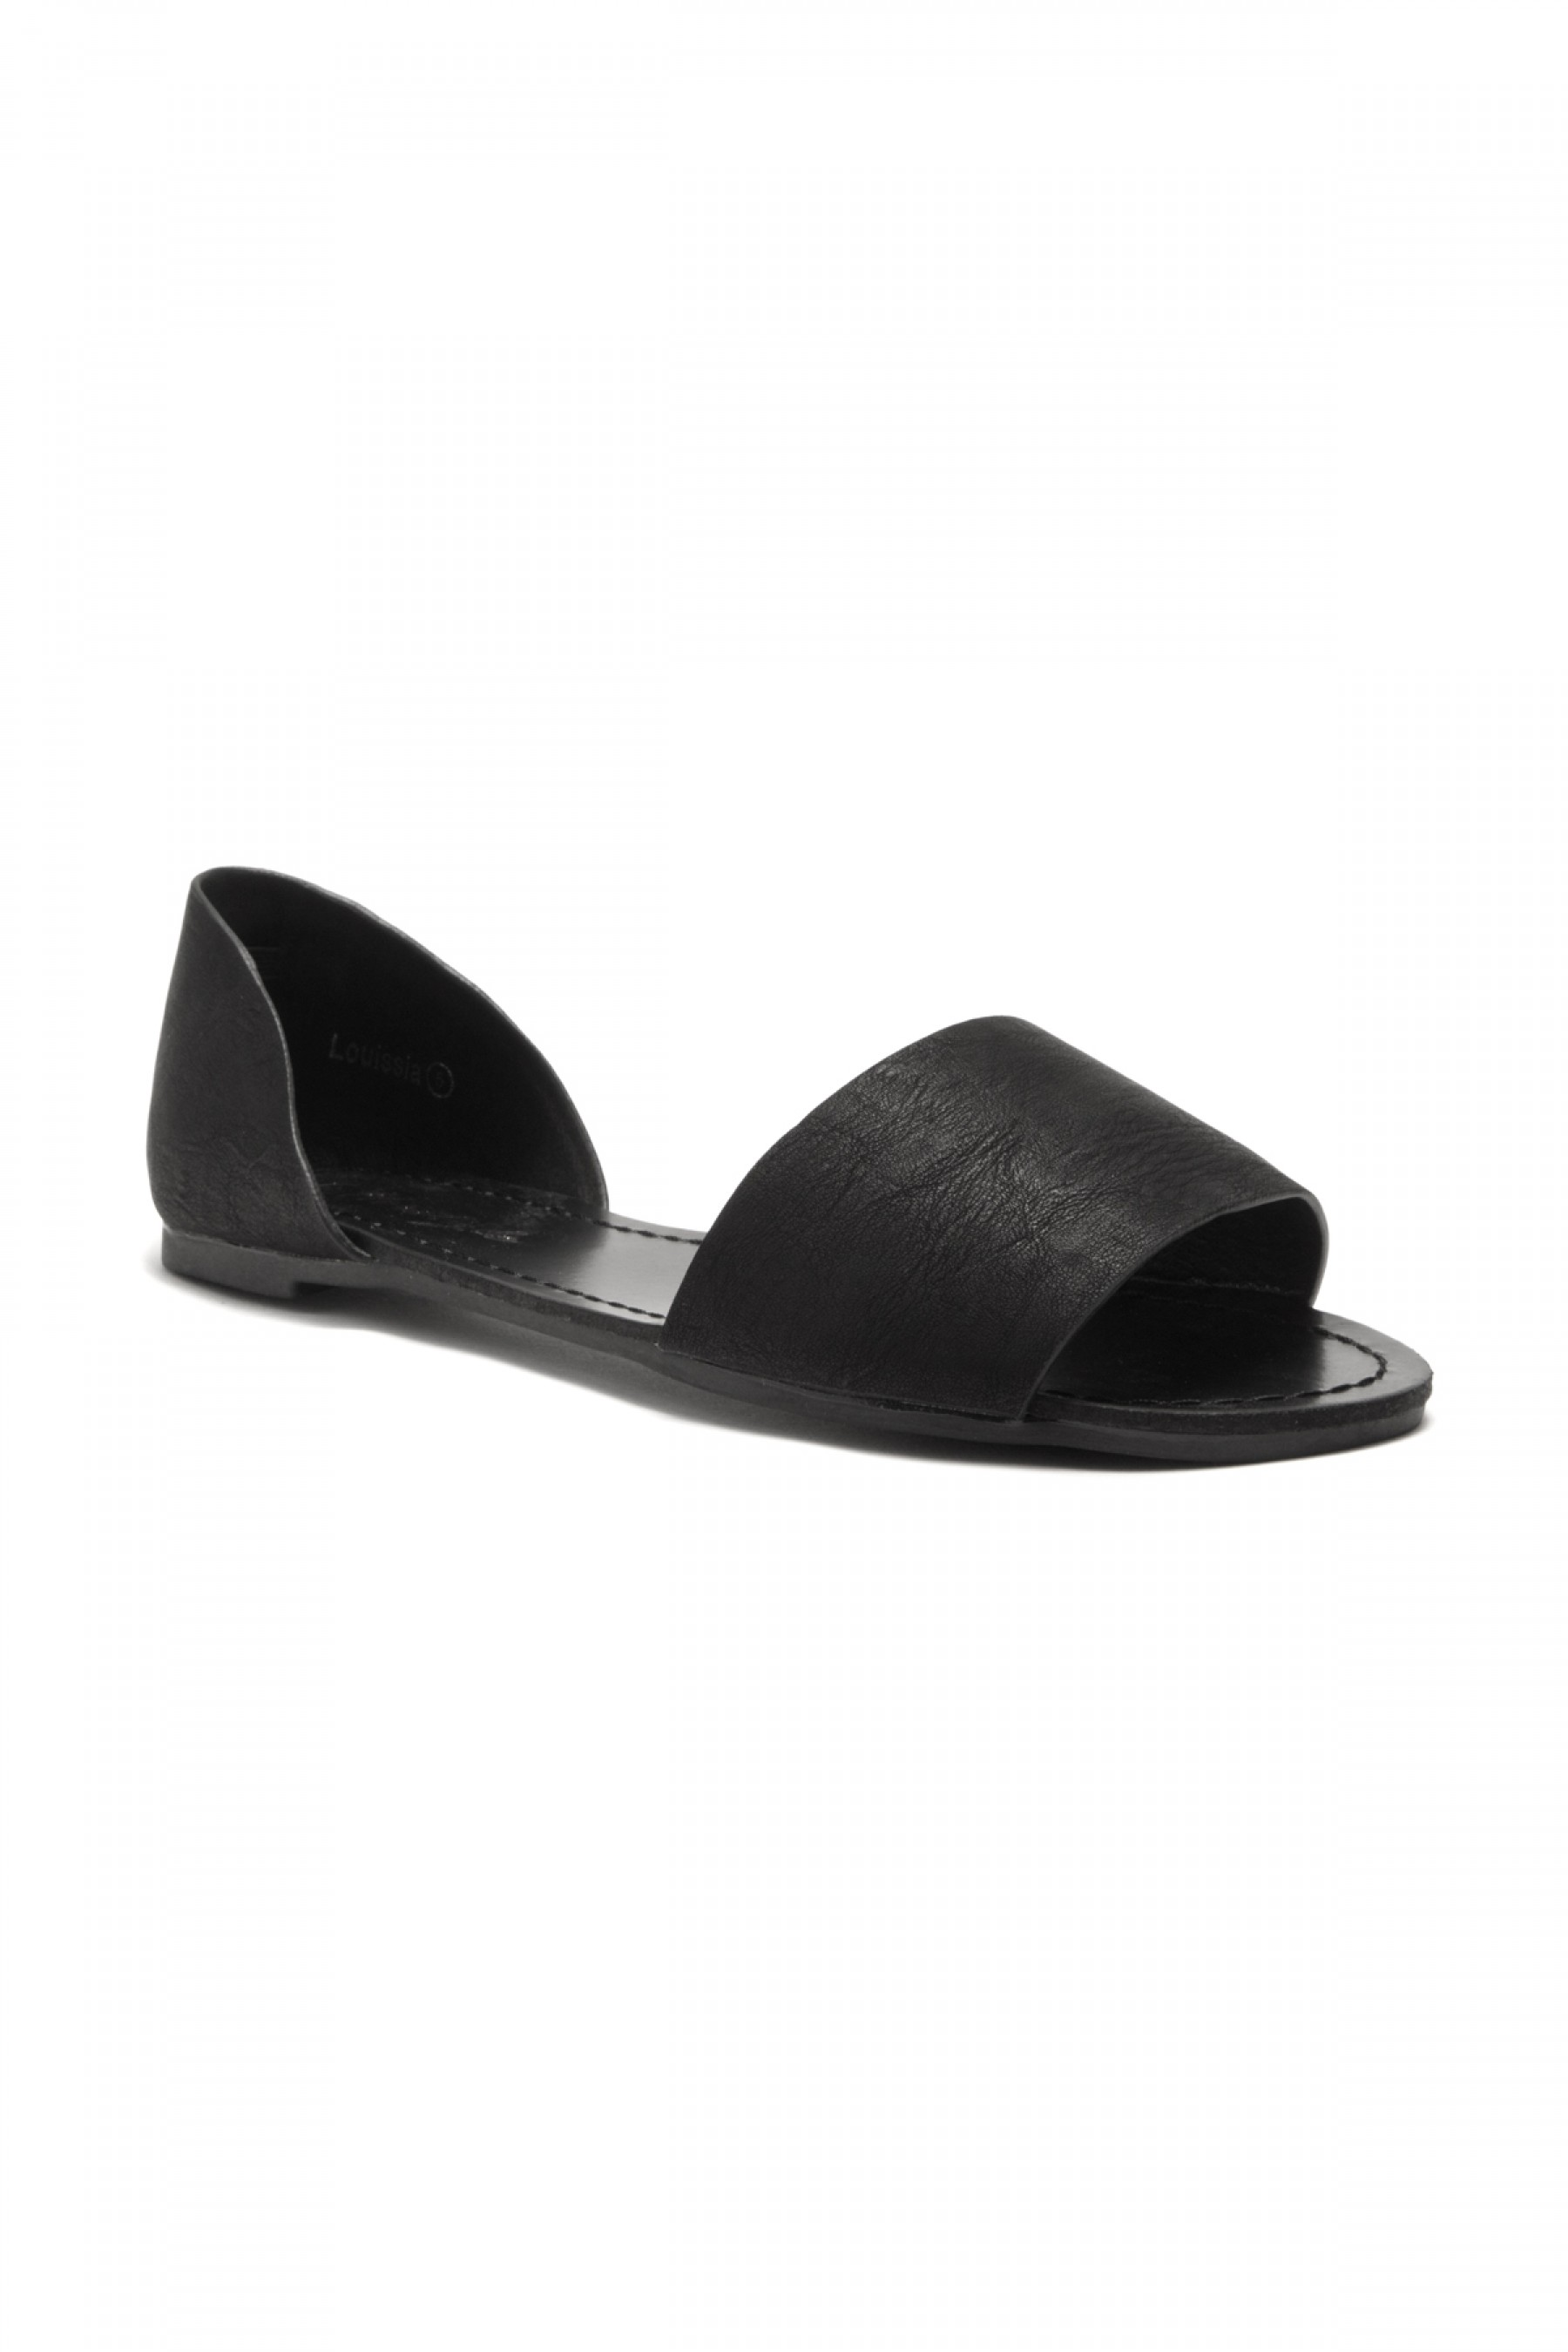 Women's Black Manmade Louissia Flat Sandal with Strap